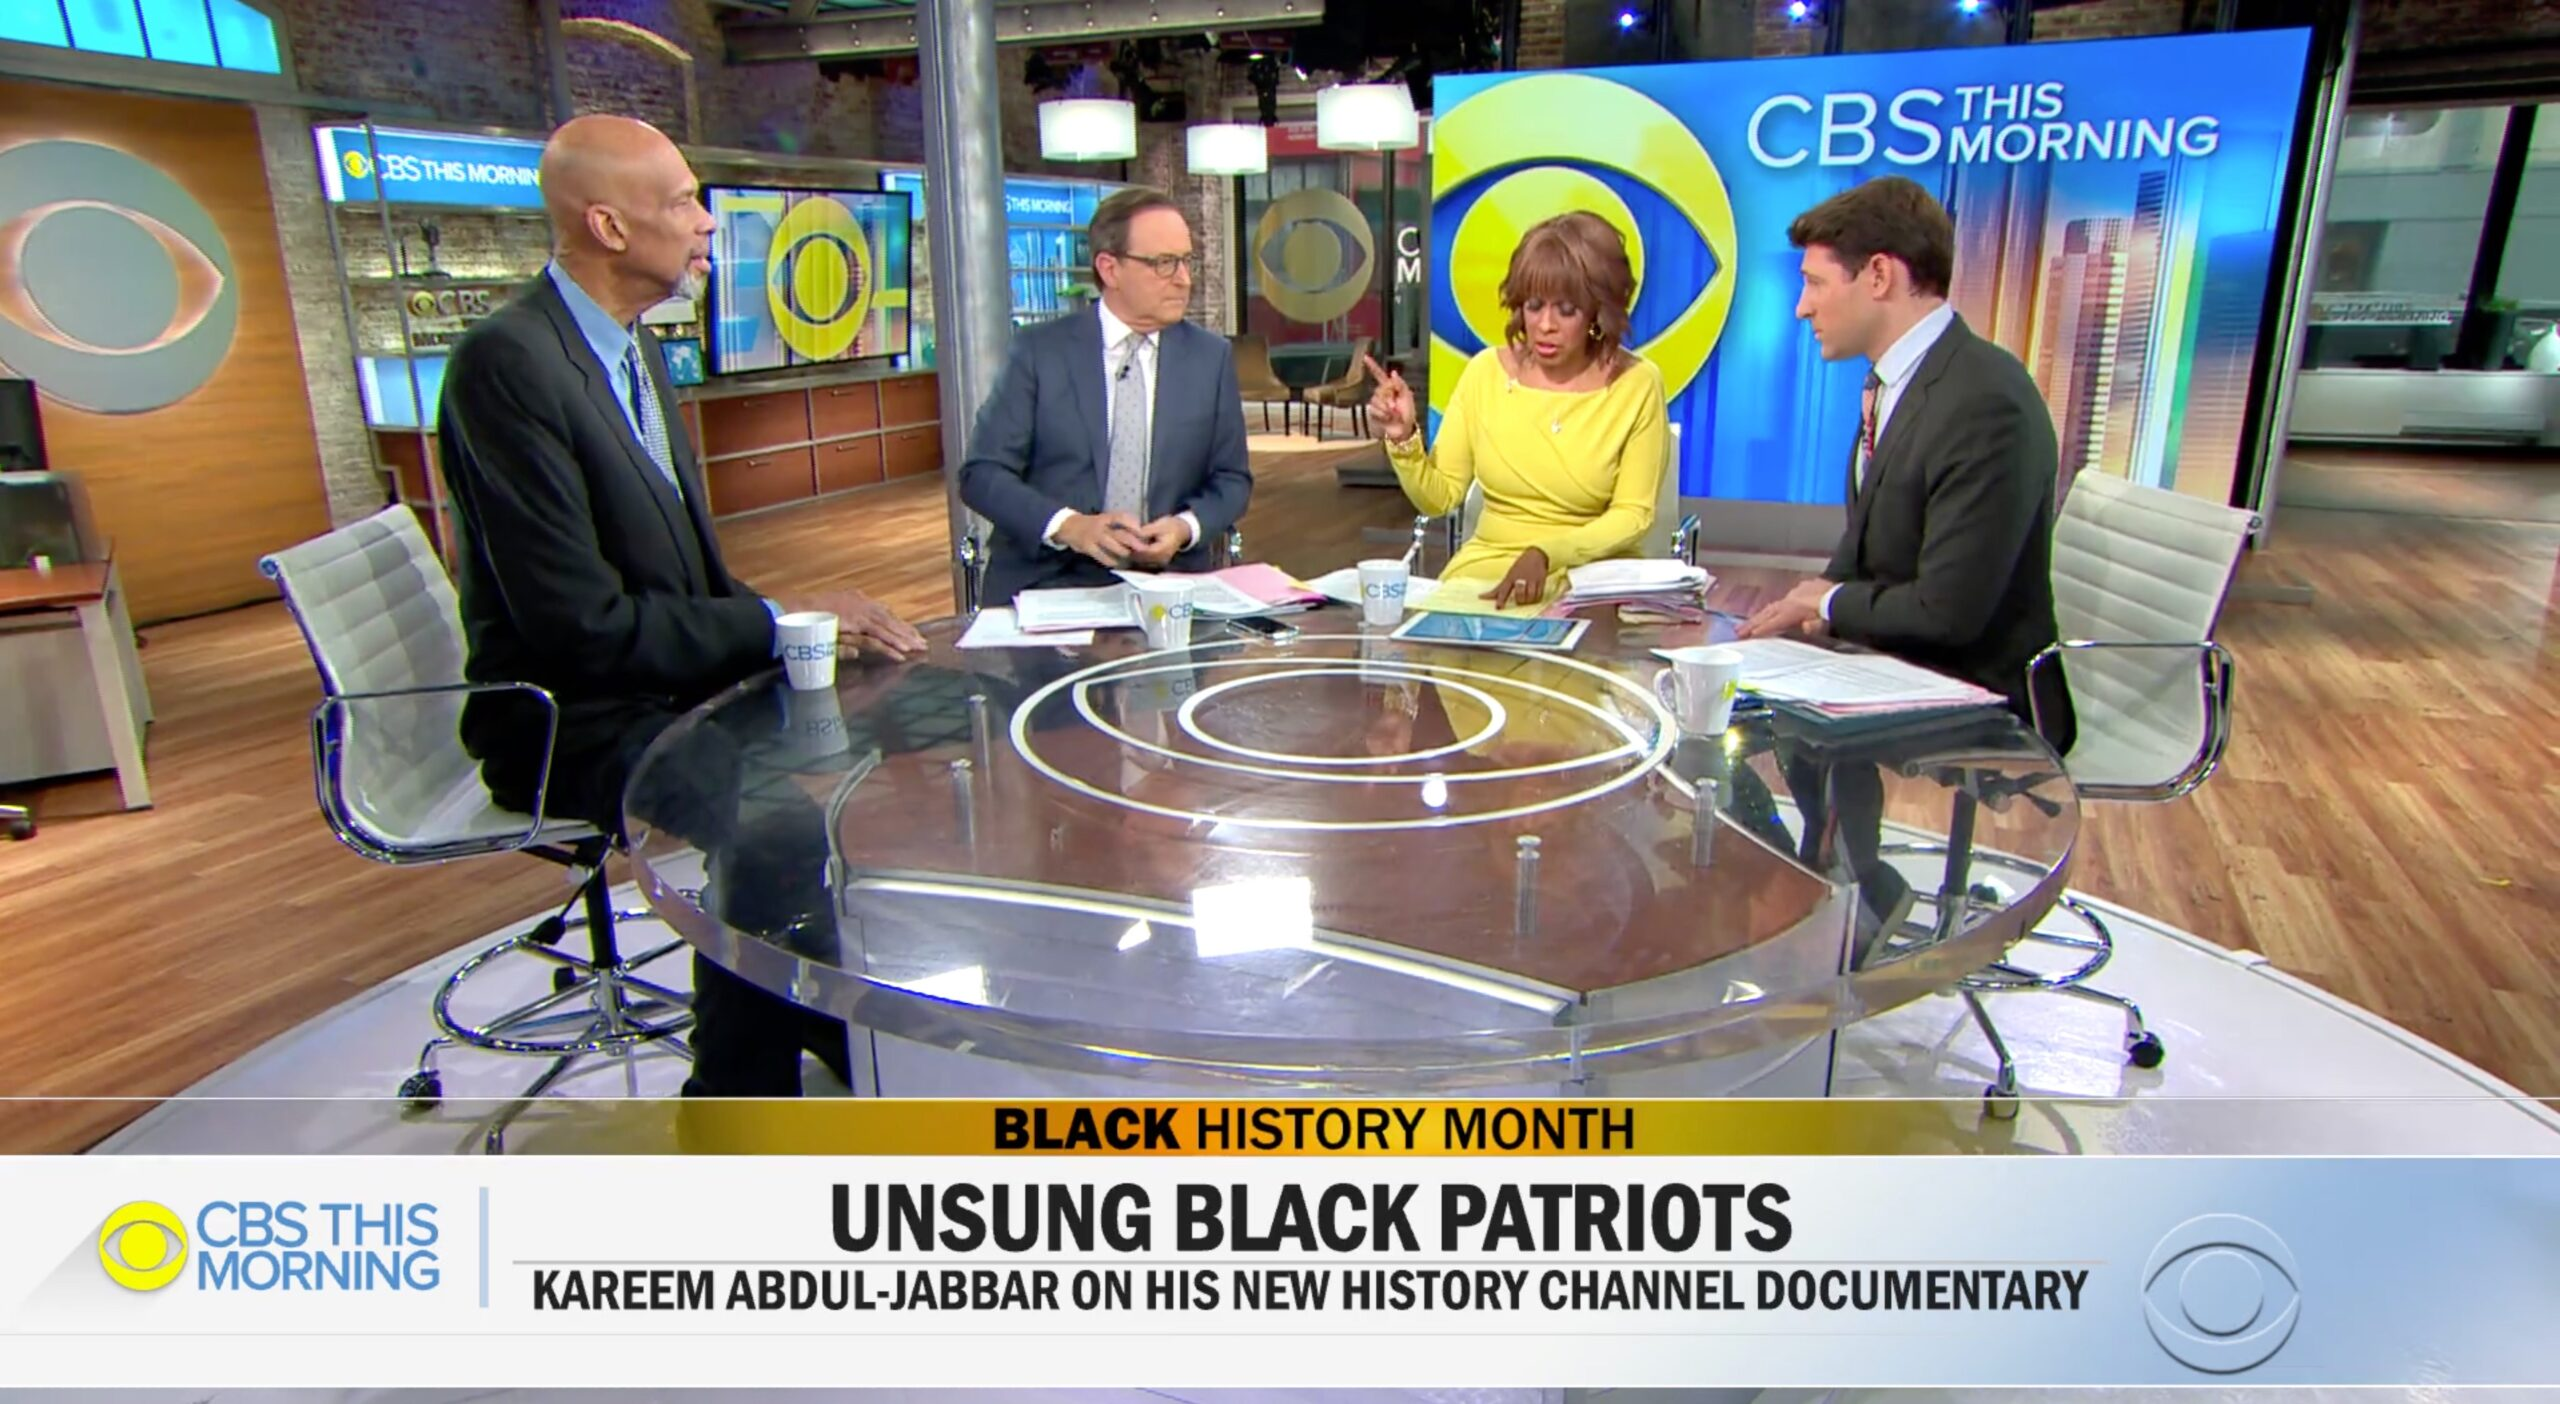 Kareem-on-22CBS-This-Morning22-Discussing-22Black-Patriots22-Documentary-scaled